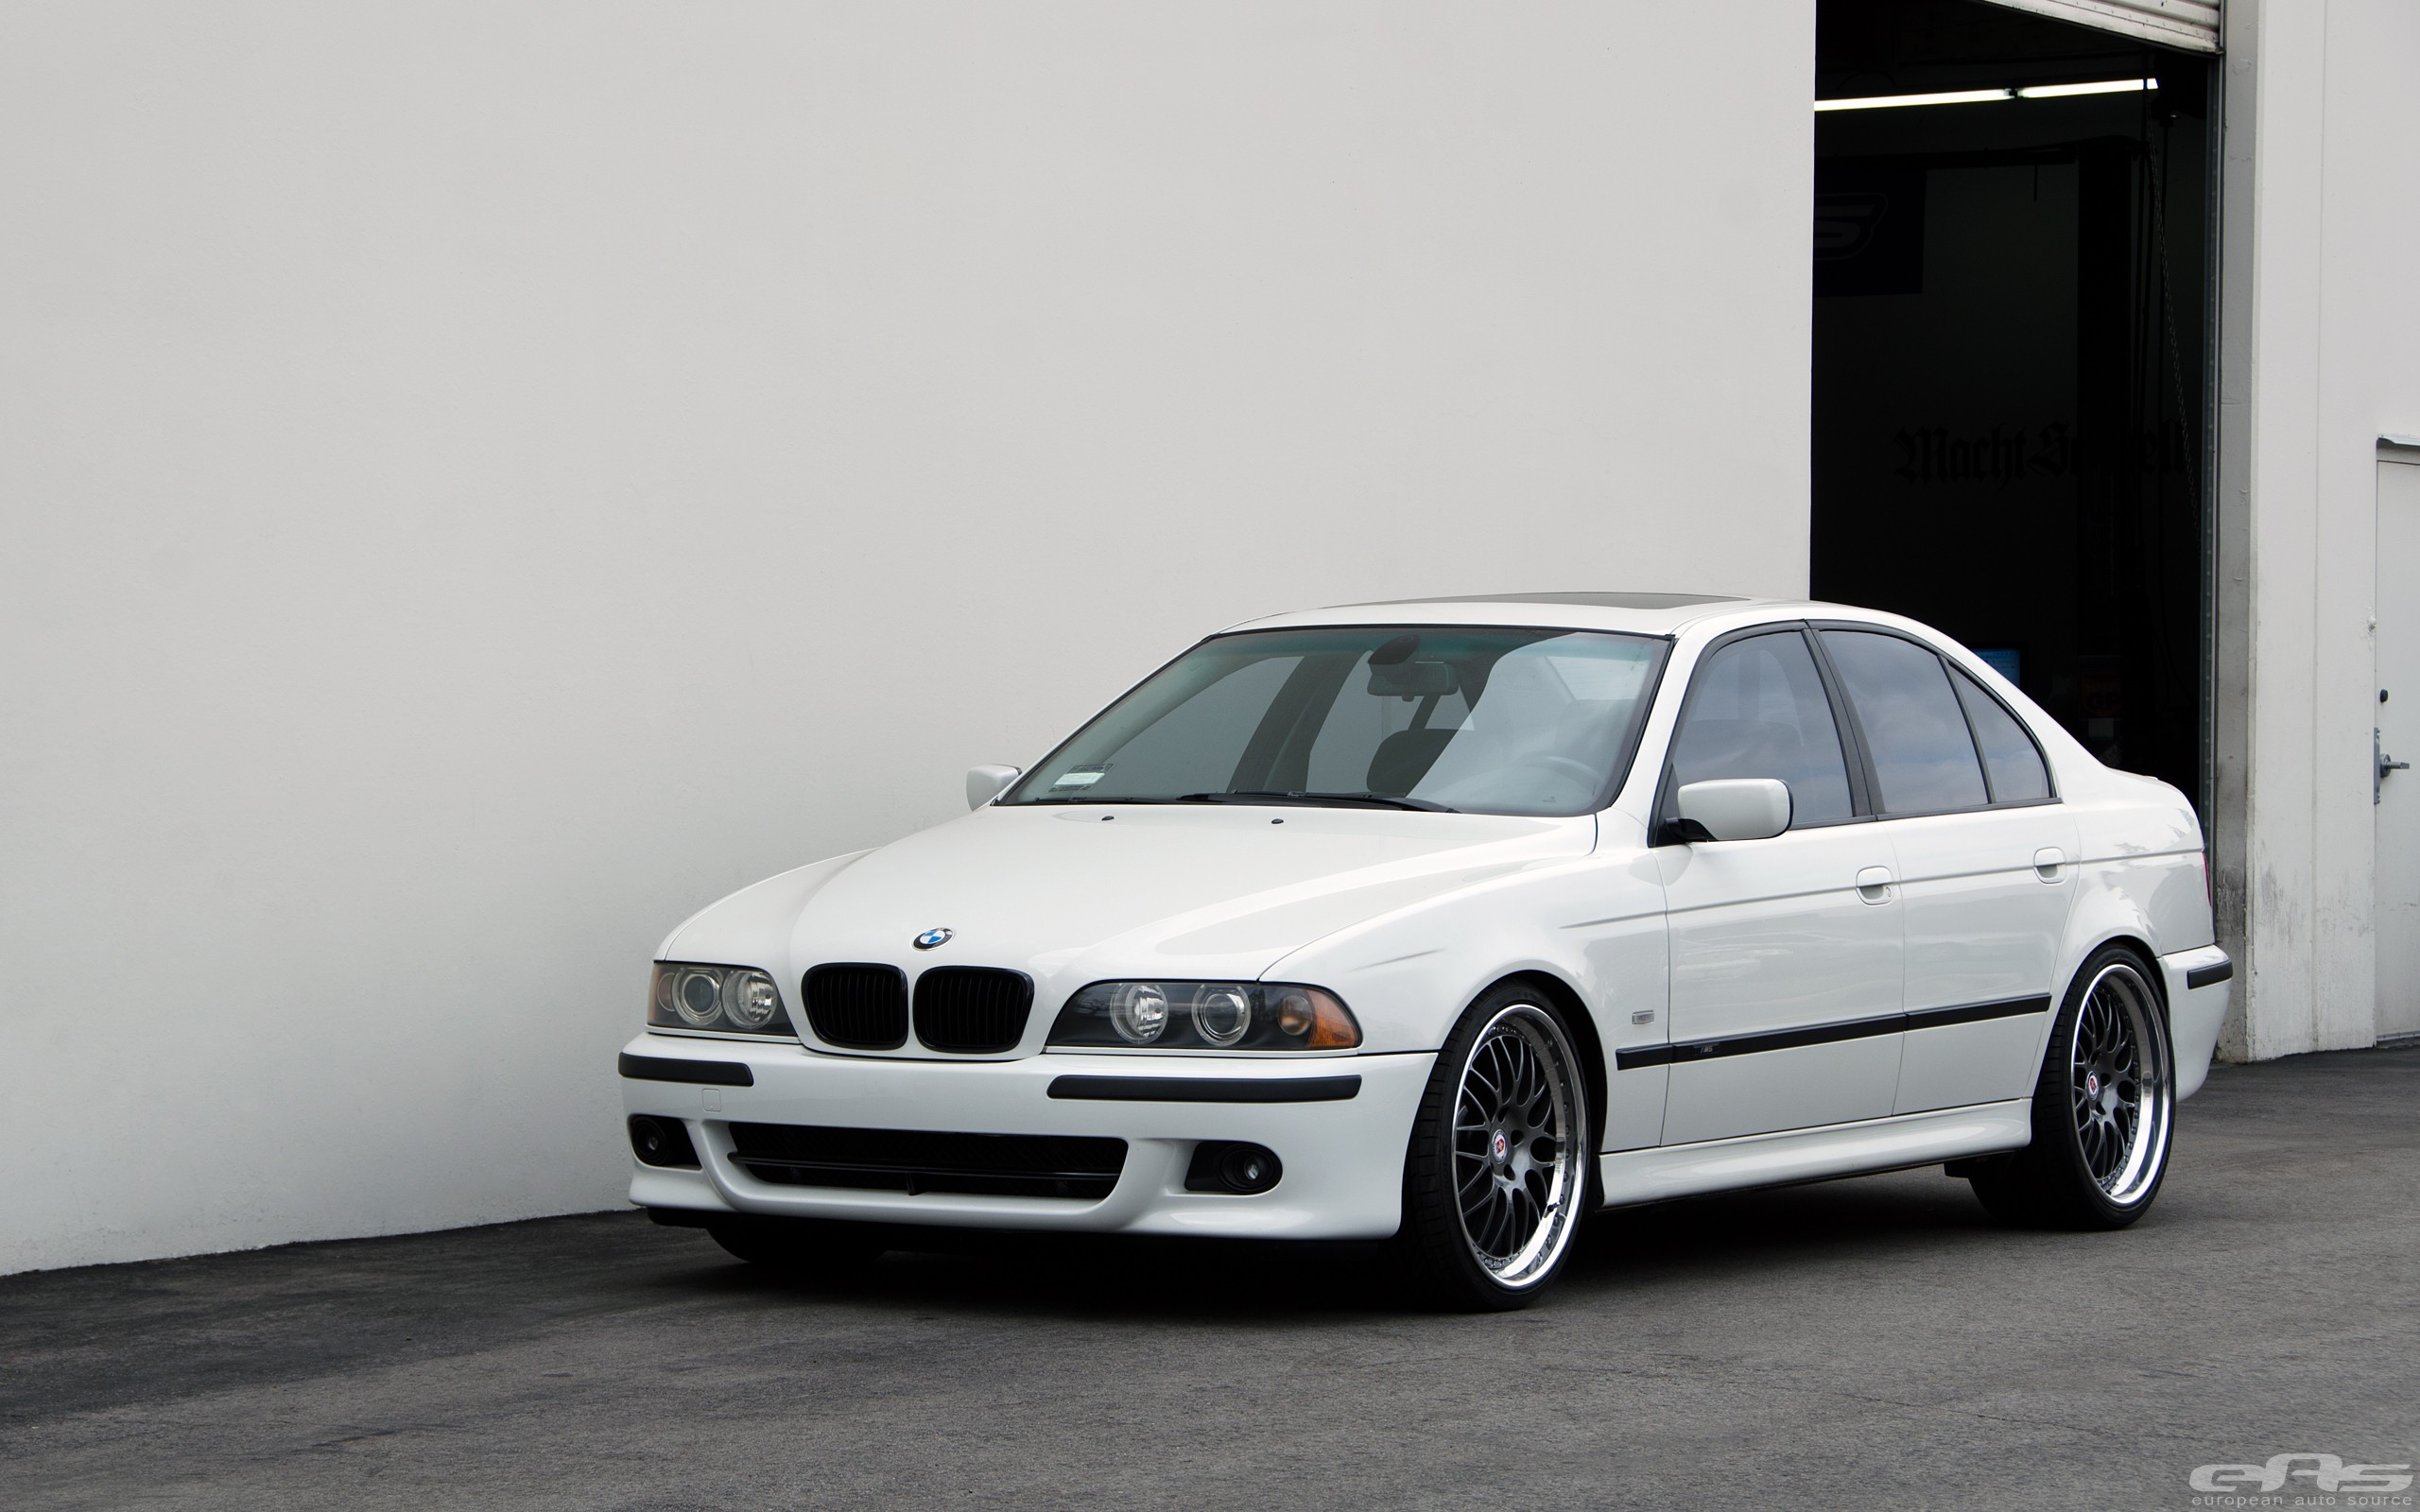 Bmw E39 530i Gets Lower At Eas Still Looks Good